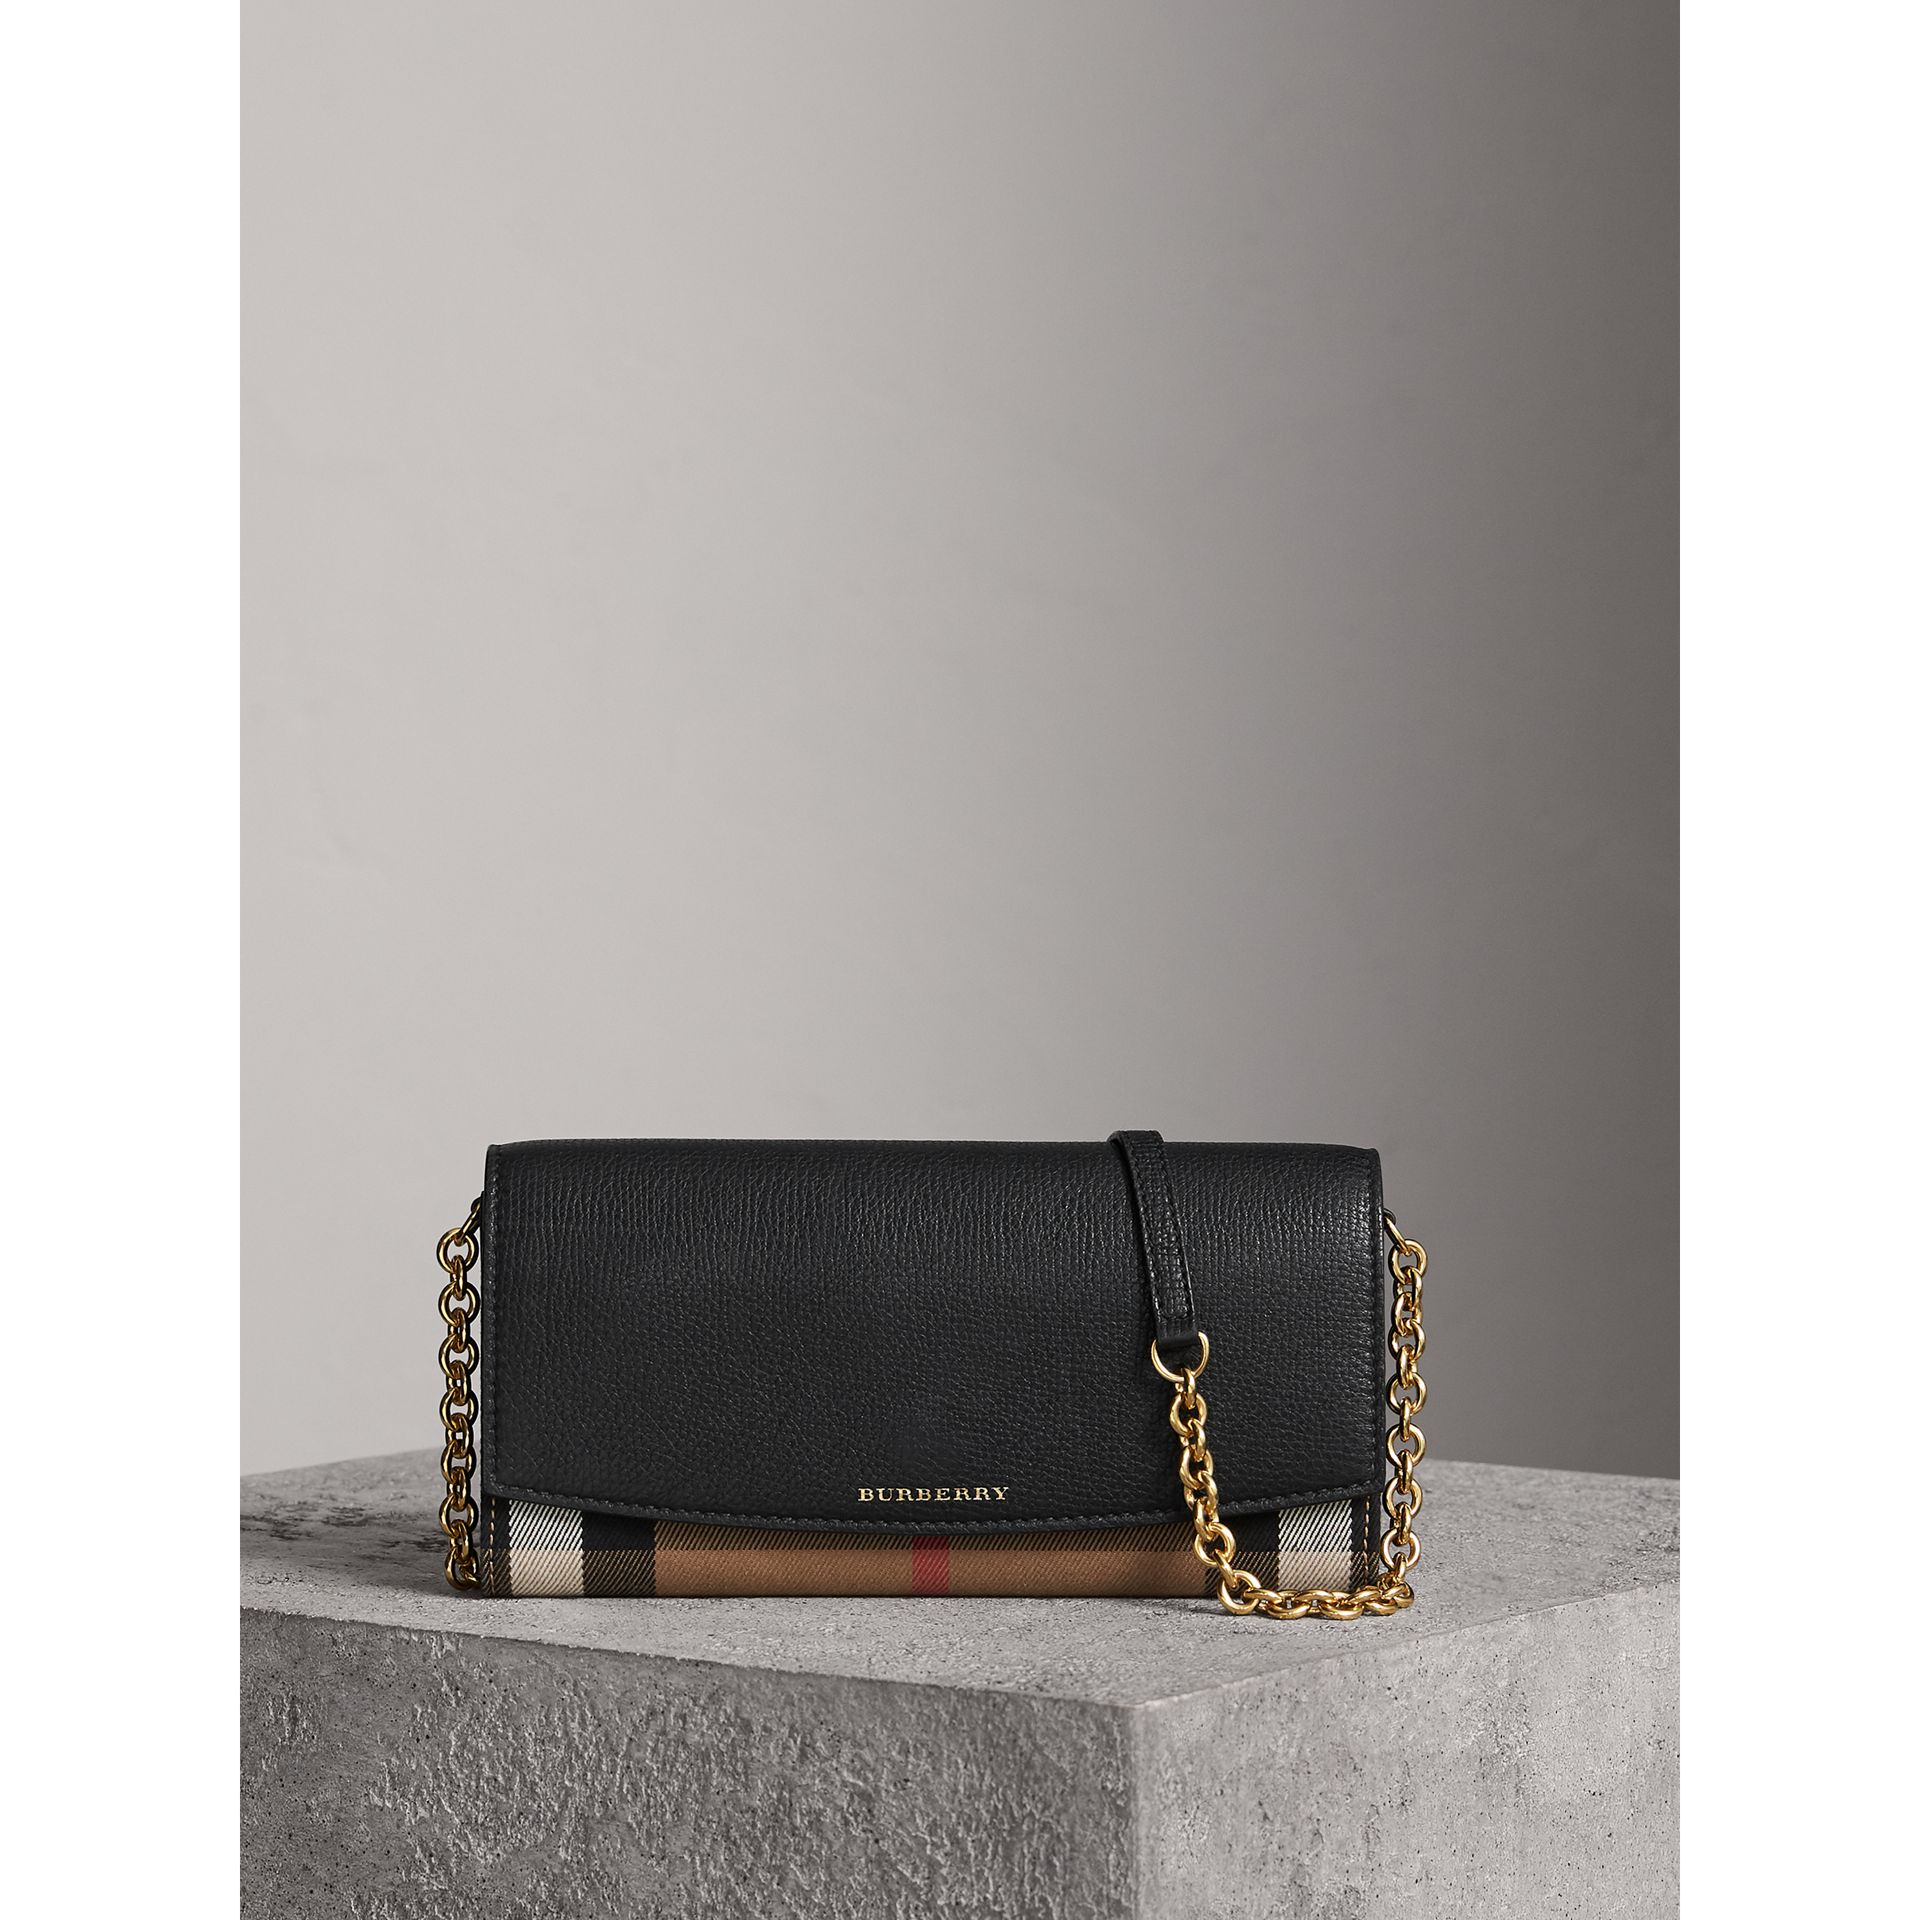 House Check and Leather Wallet with Chain in Black - Women | Burberry United Kingdom - gallery image 6